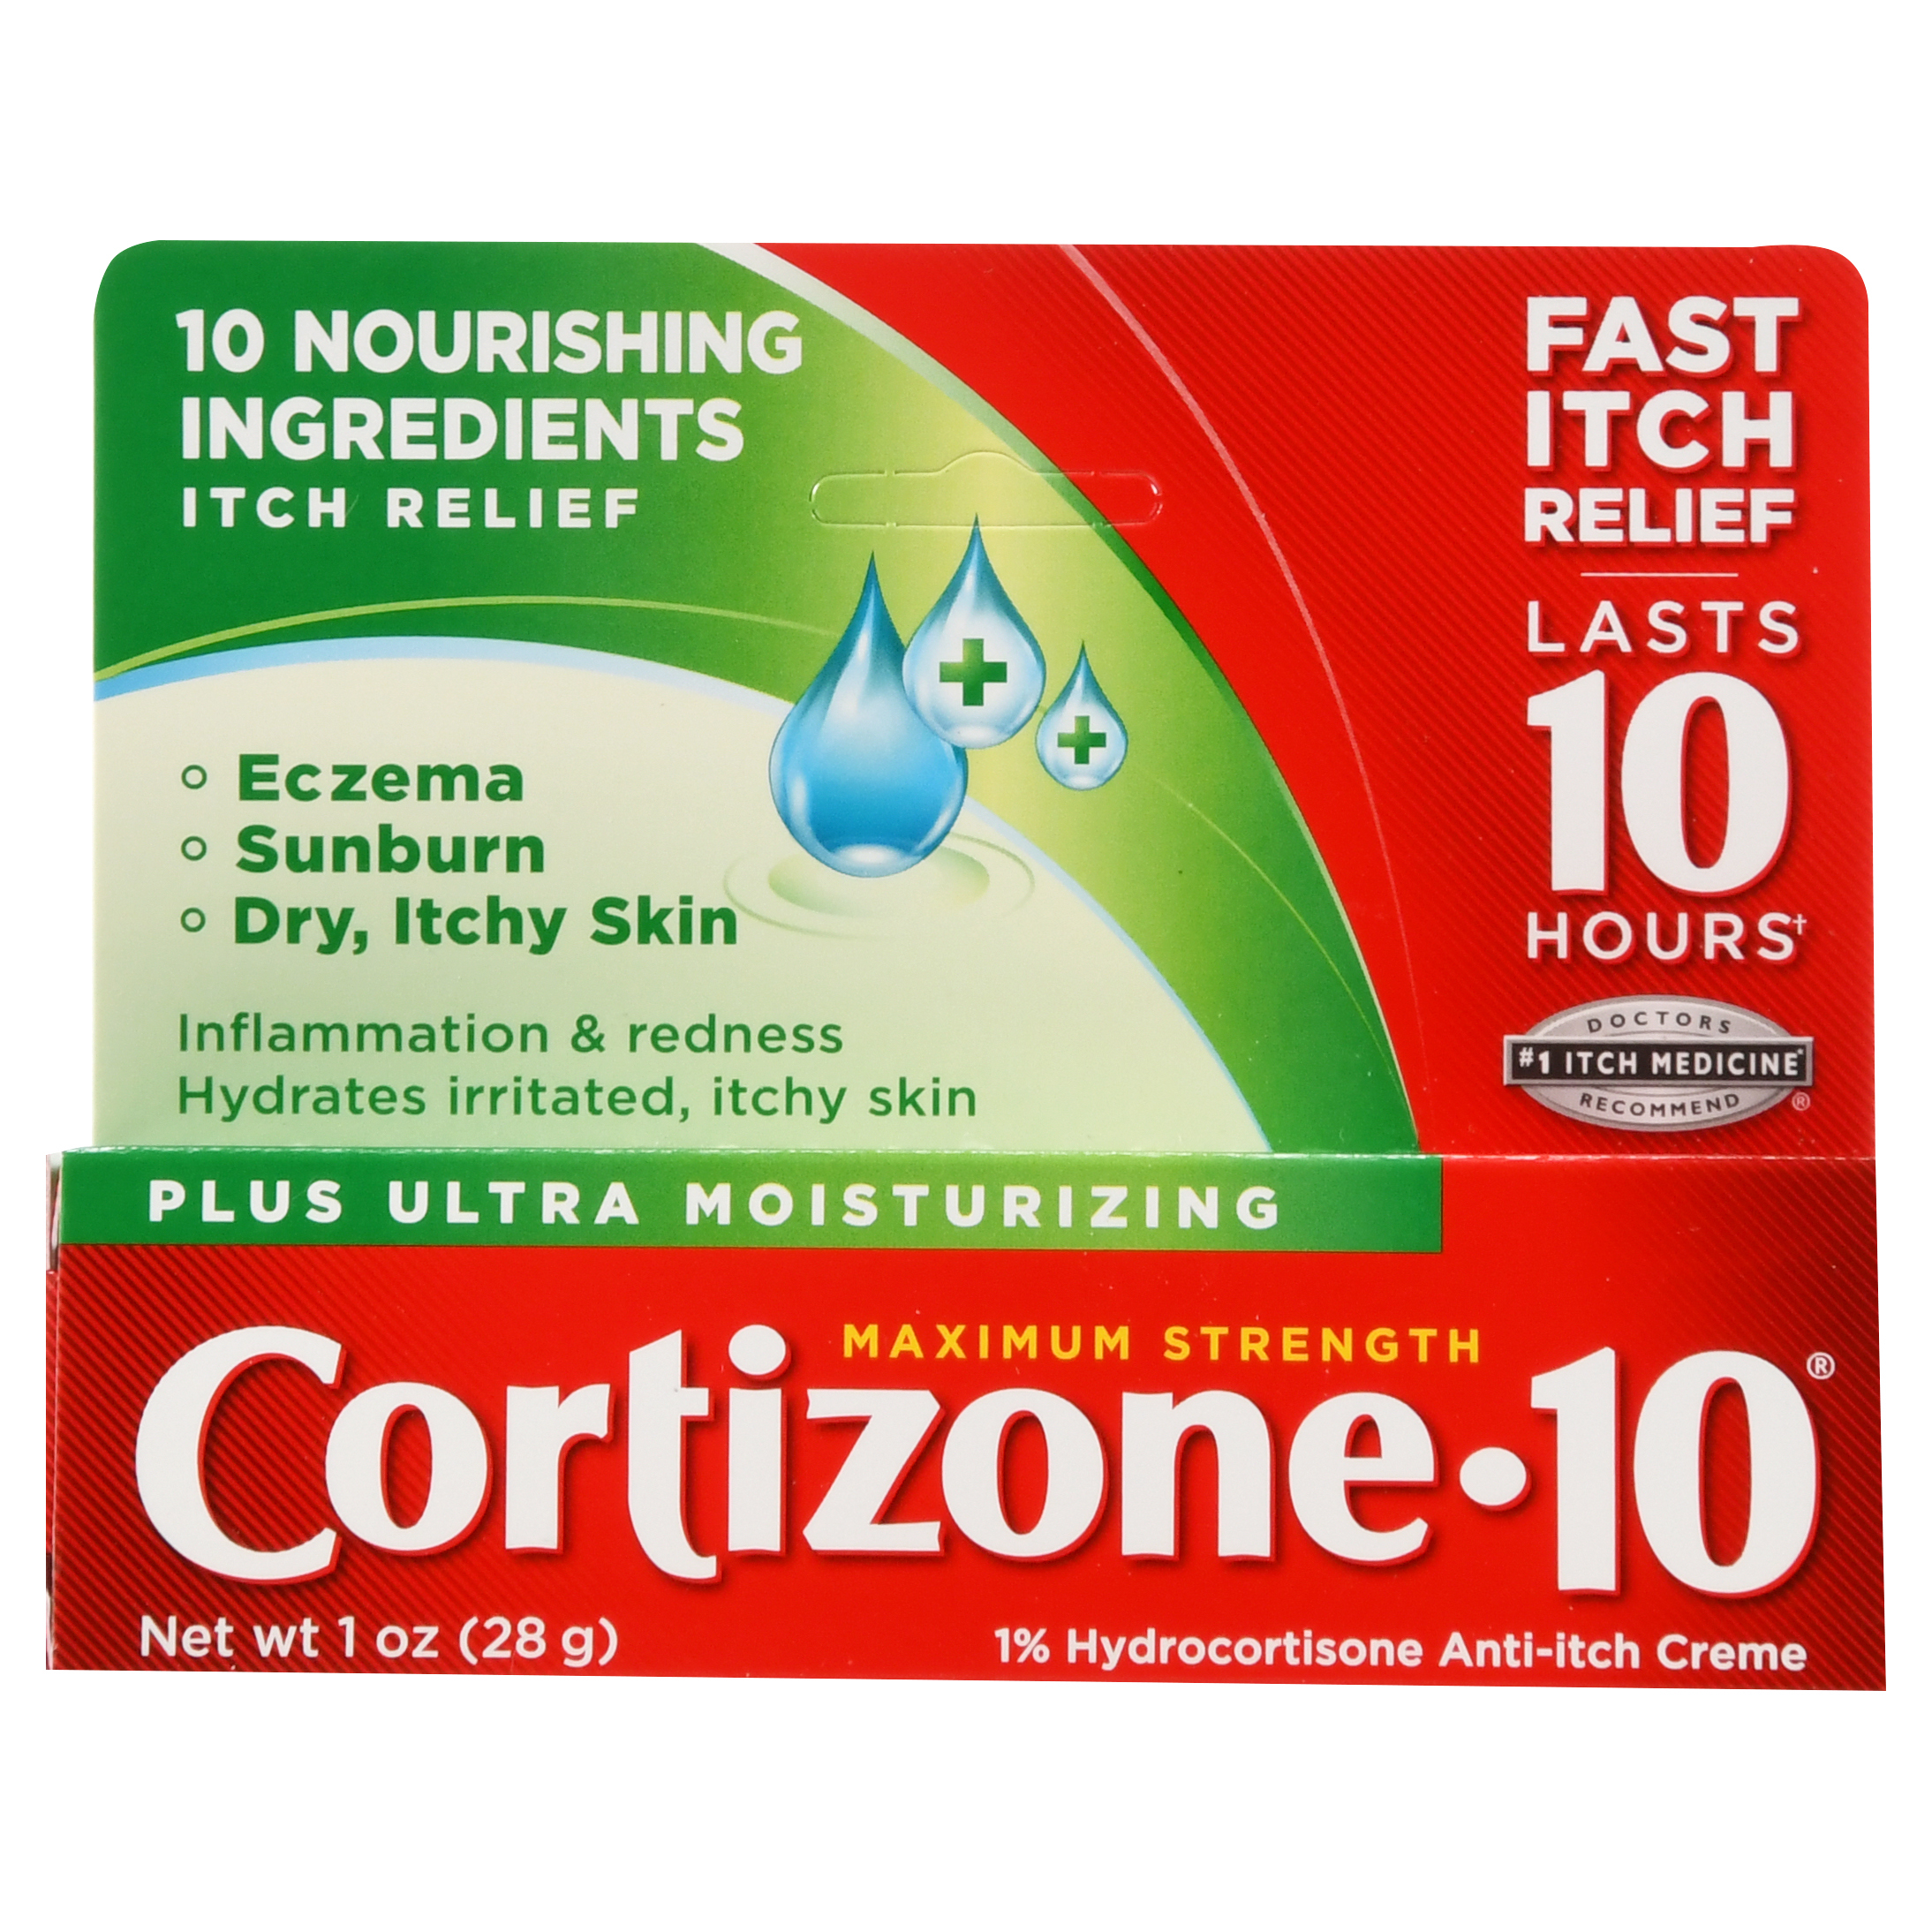 Cortizone 10 Plus Ultra Moisturizing 1% Hydrocortisone Anti-Itch Crème, 1 oz